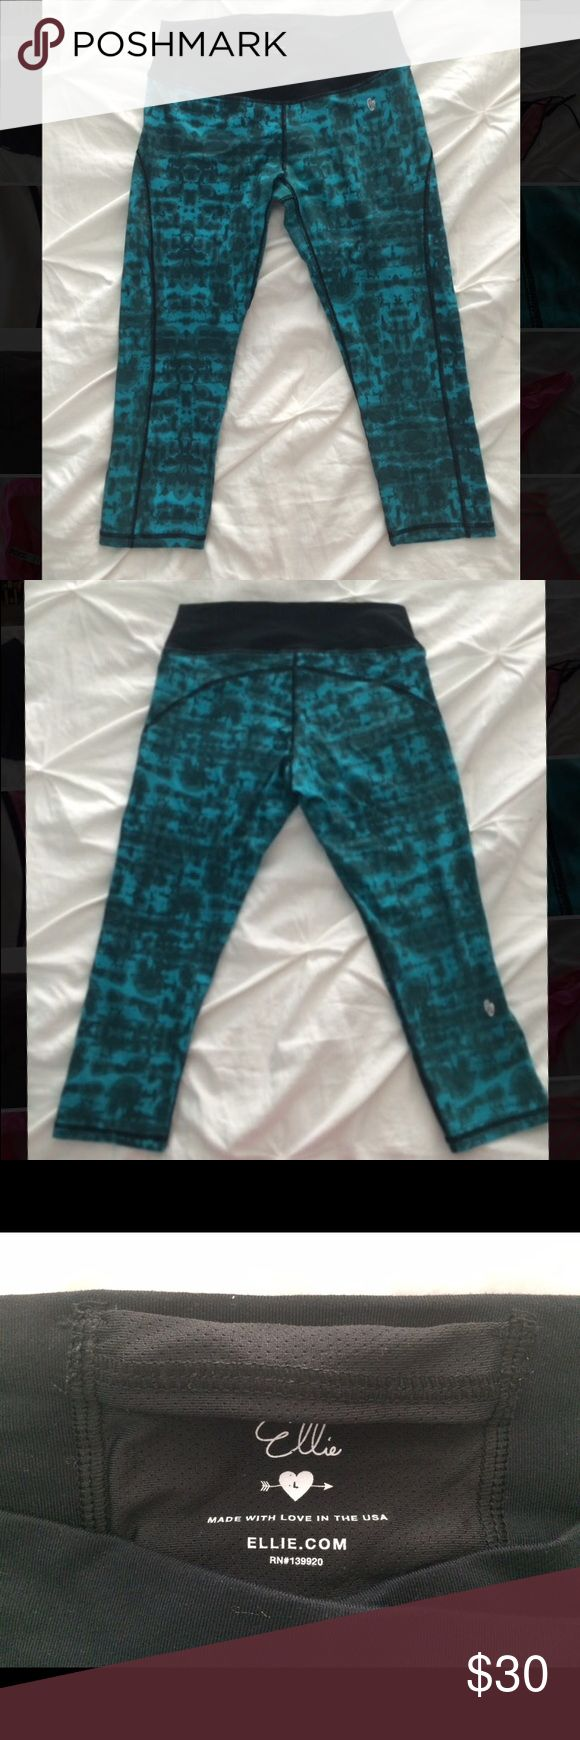 Ellie work out capris Ellie work out capris. Comfortable, flattering waistband. Turquoise and black. Strategically flattering seams. A bit of pilling in upper thigh area only. Perfect stretch. Size L 8/10/12 Ellie Pants